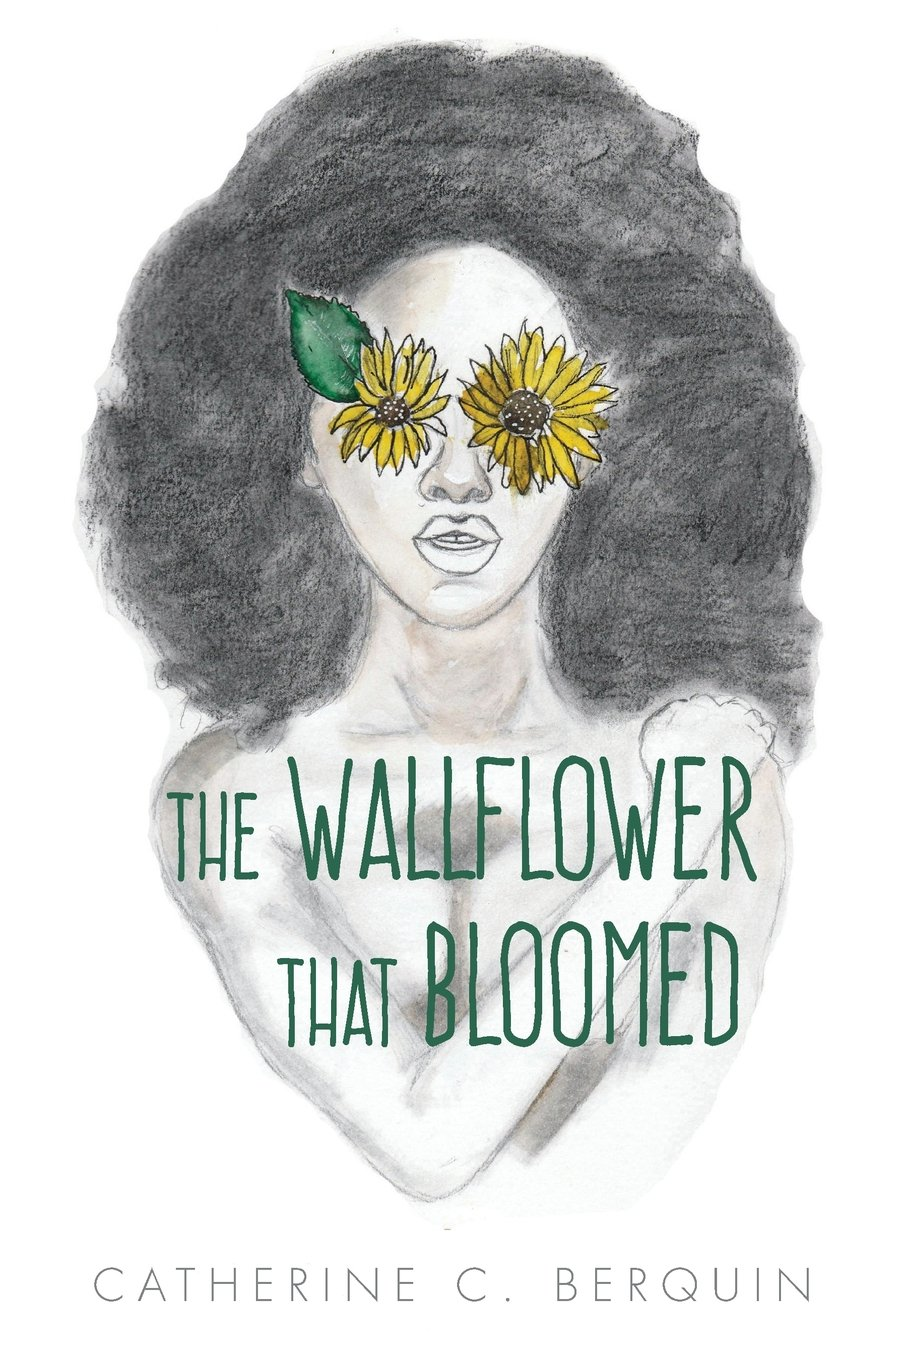 The Wallflower That Bloomed